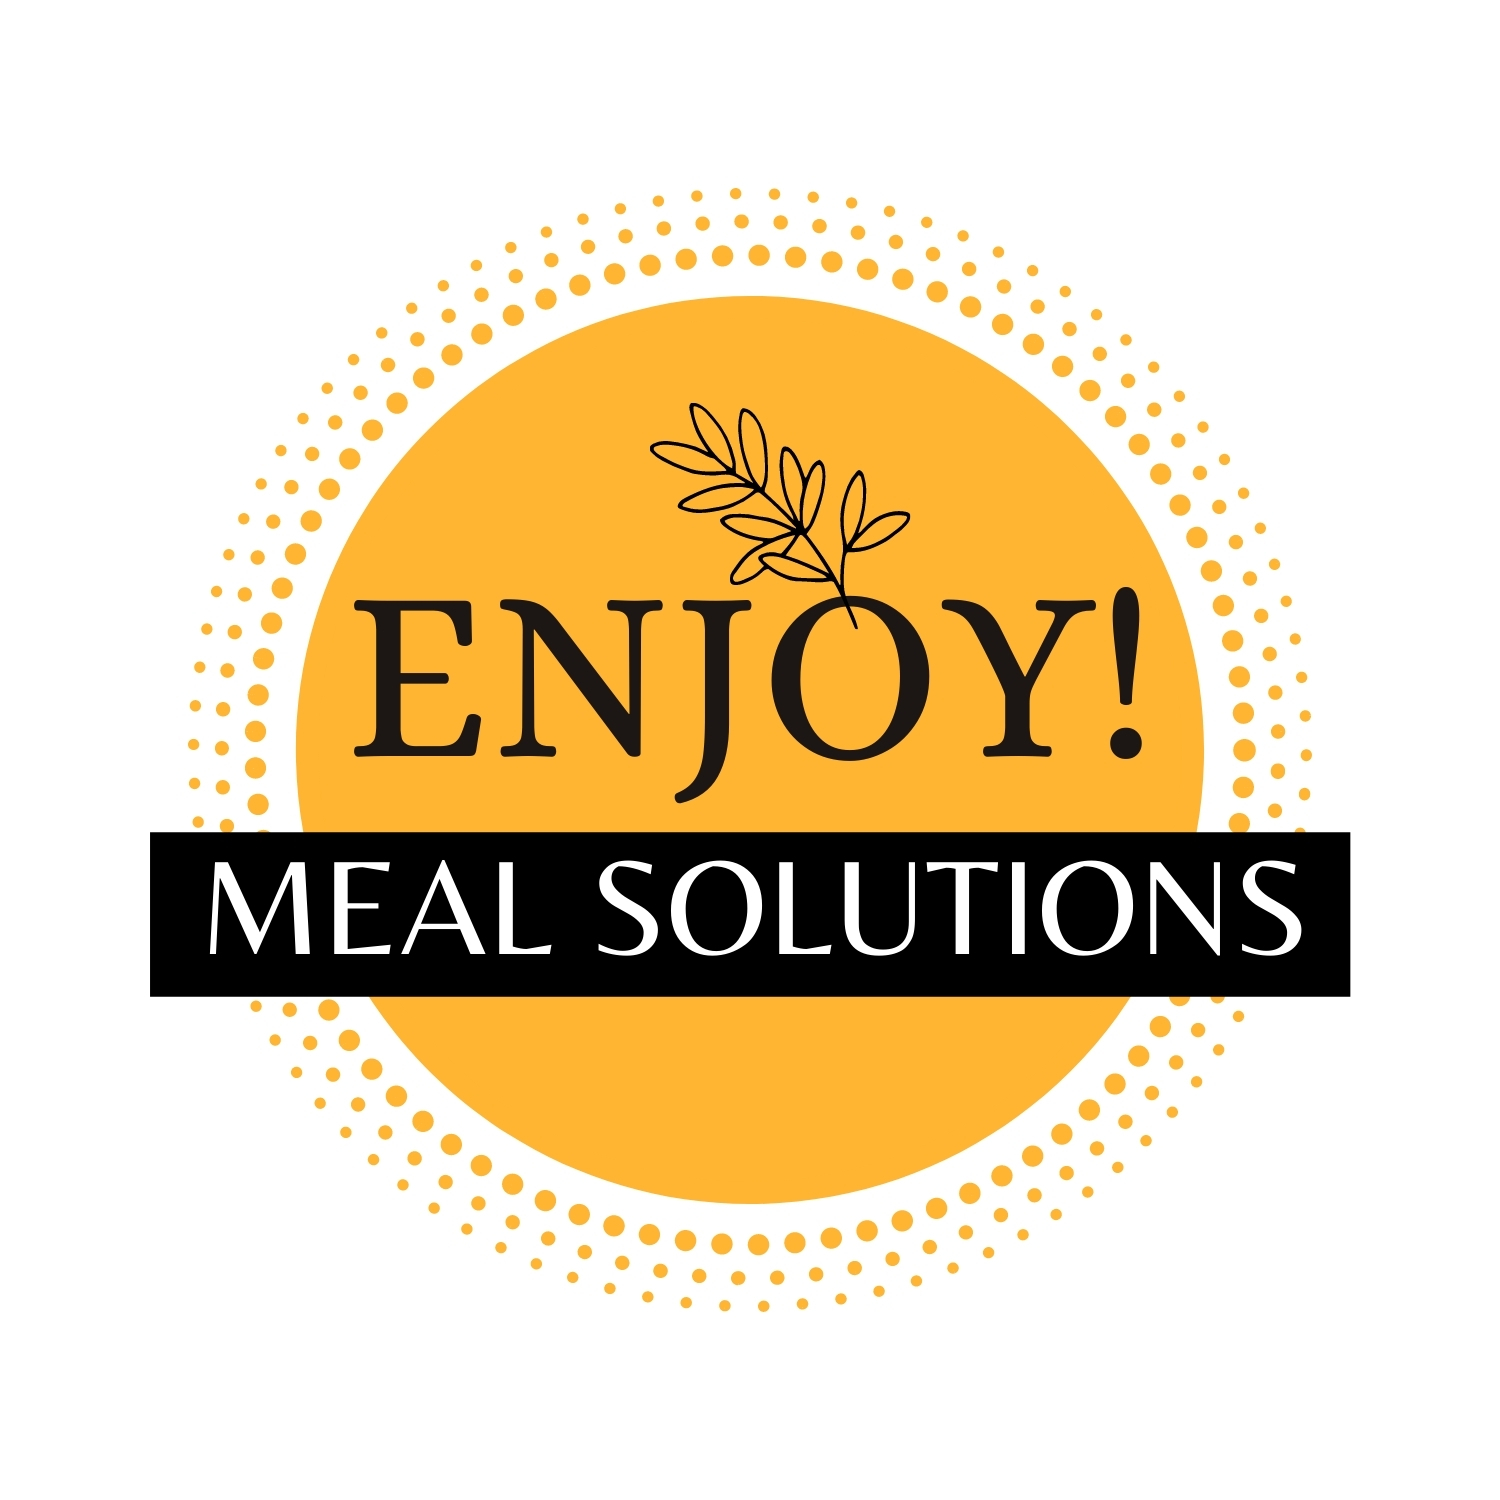 Enjoy! Meal Solutions